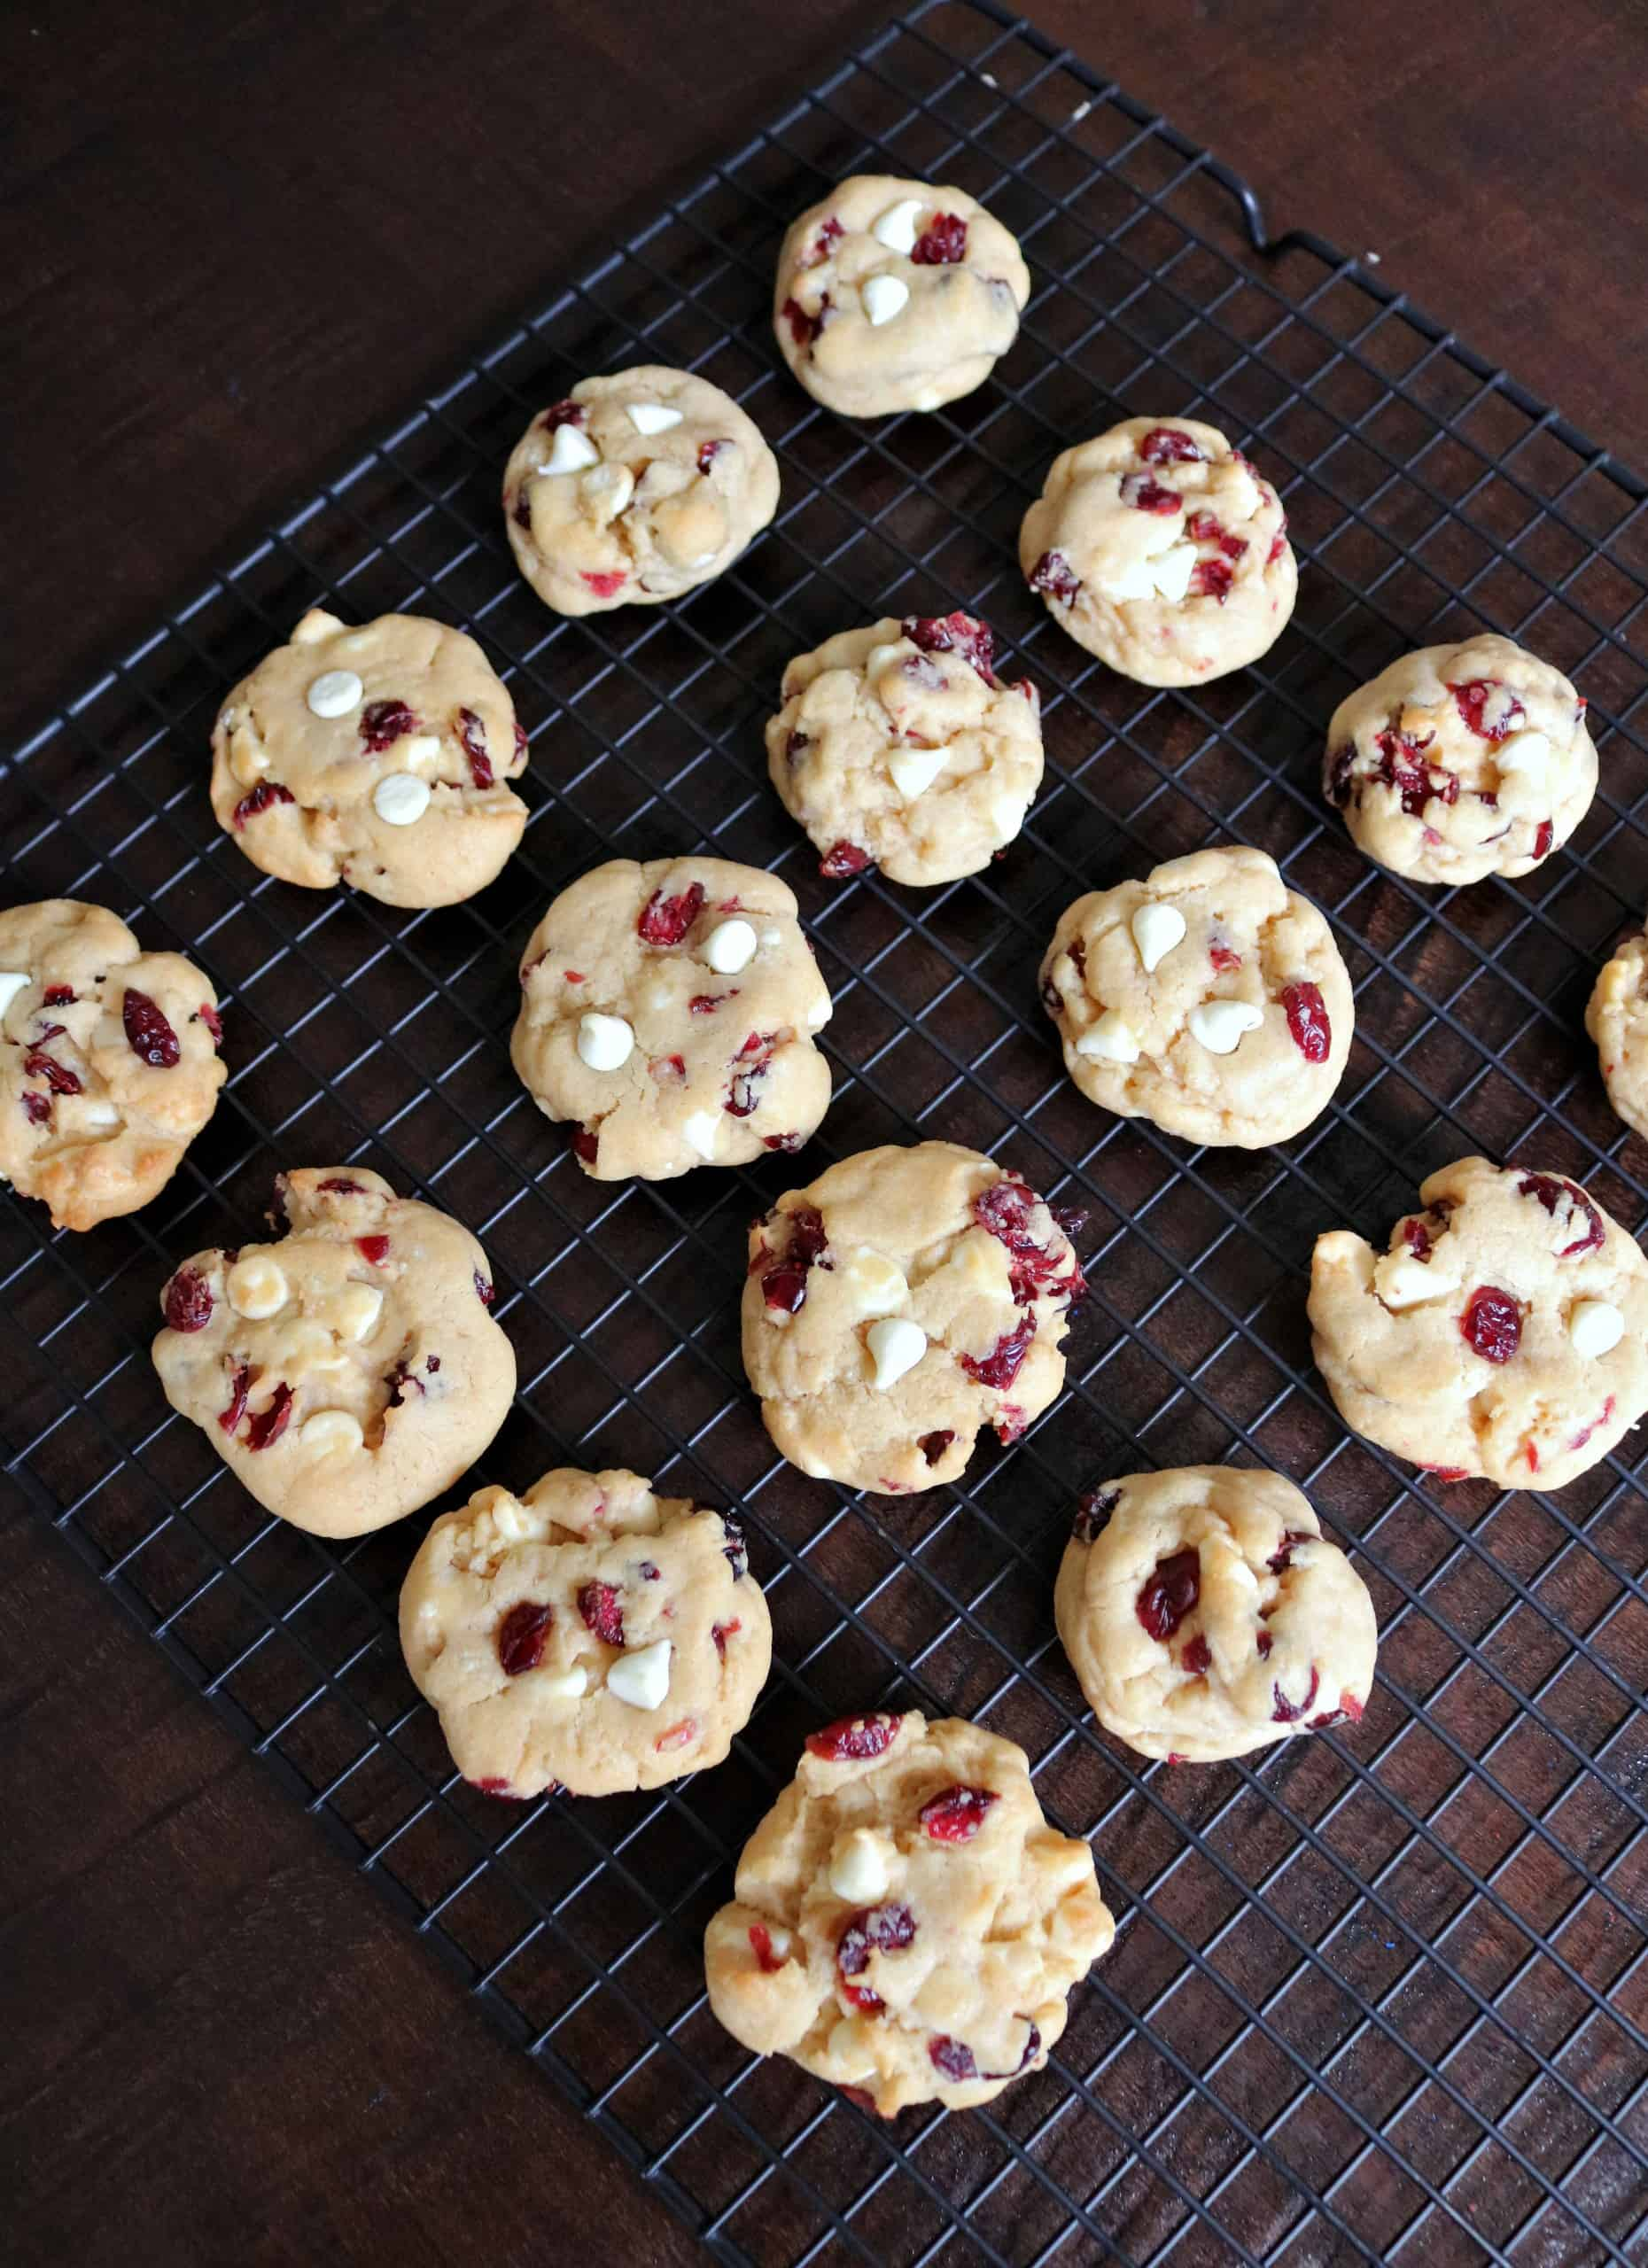 These Easy White Chocolate Cranberry Cookies are great for baking for Thanksgiving, Christmas, or anytime! They're soft, chewy, and loaded with dried cranberries and white chocolate chips for an unbelievably delicious cookie. #cranberrycookies #whitechocolatecookies #cookierecipe